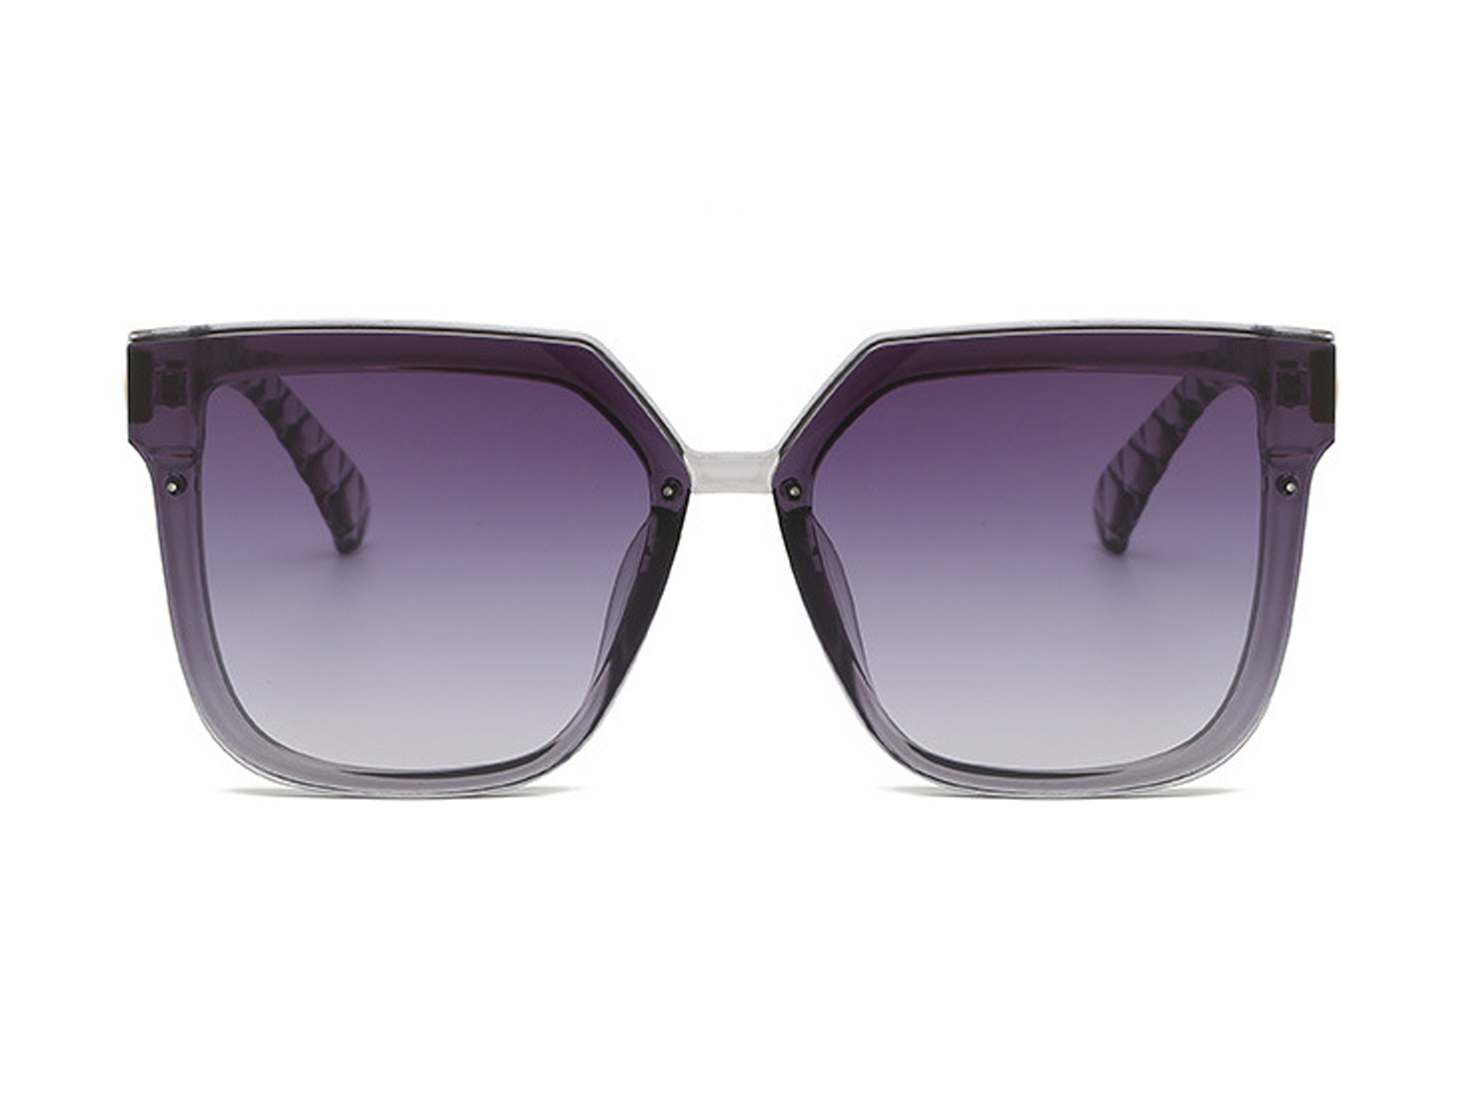 Trailblazer Cat-Eye Shades -Clear / Gradient Purple - Front